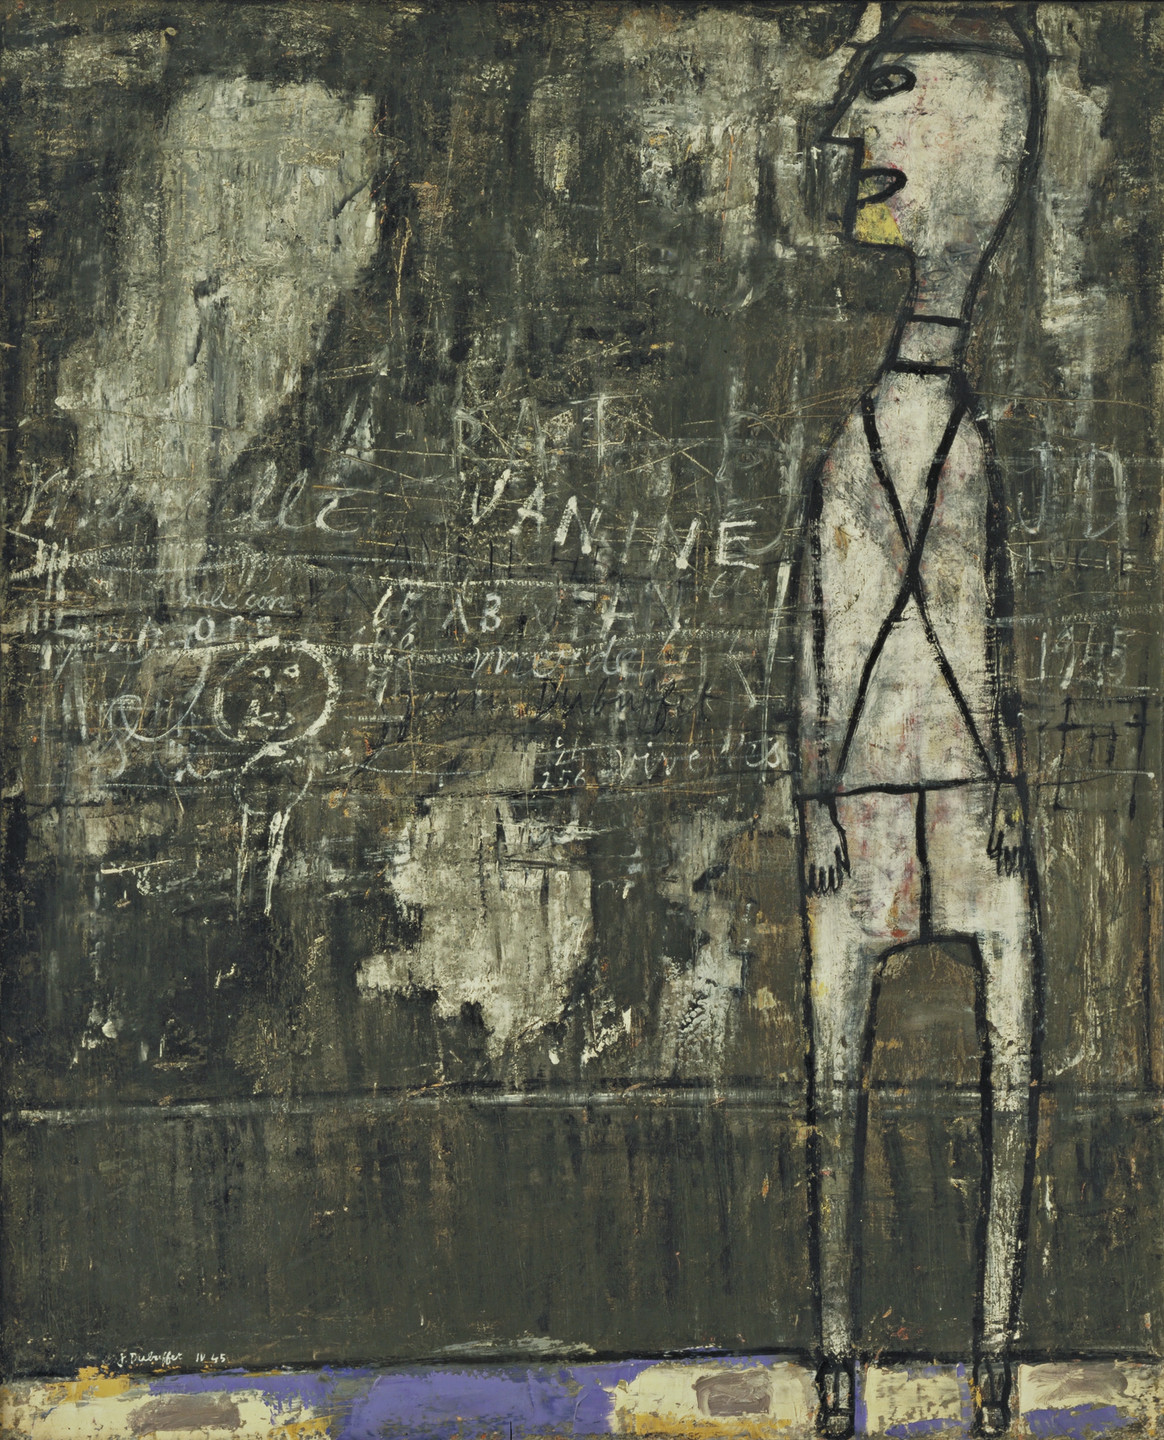 Jean Dubuffet. Wall with Inscriptions. April 1945